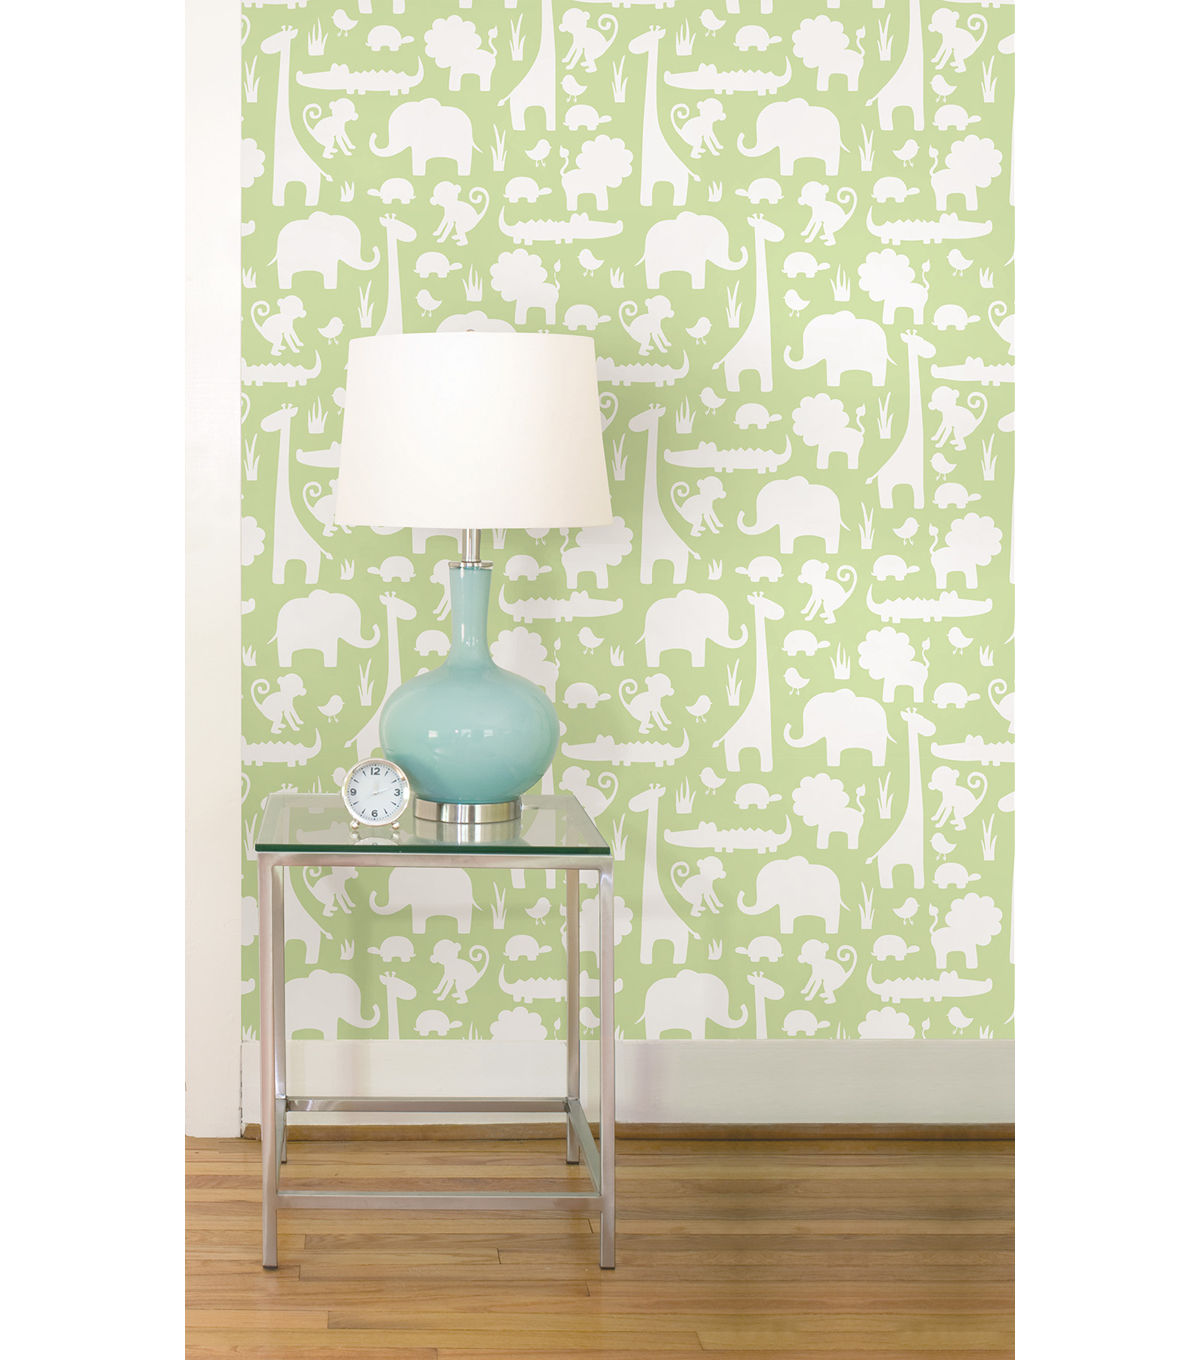 WallPops®NuWallpaper™Green Its A Jungle In Here Peel And Stick Wallpaper